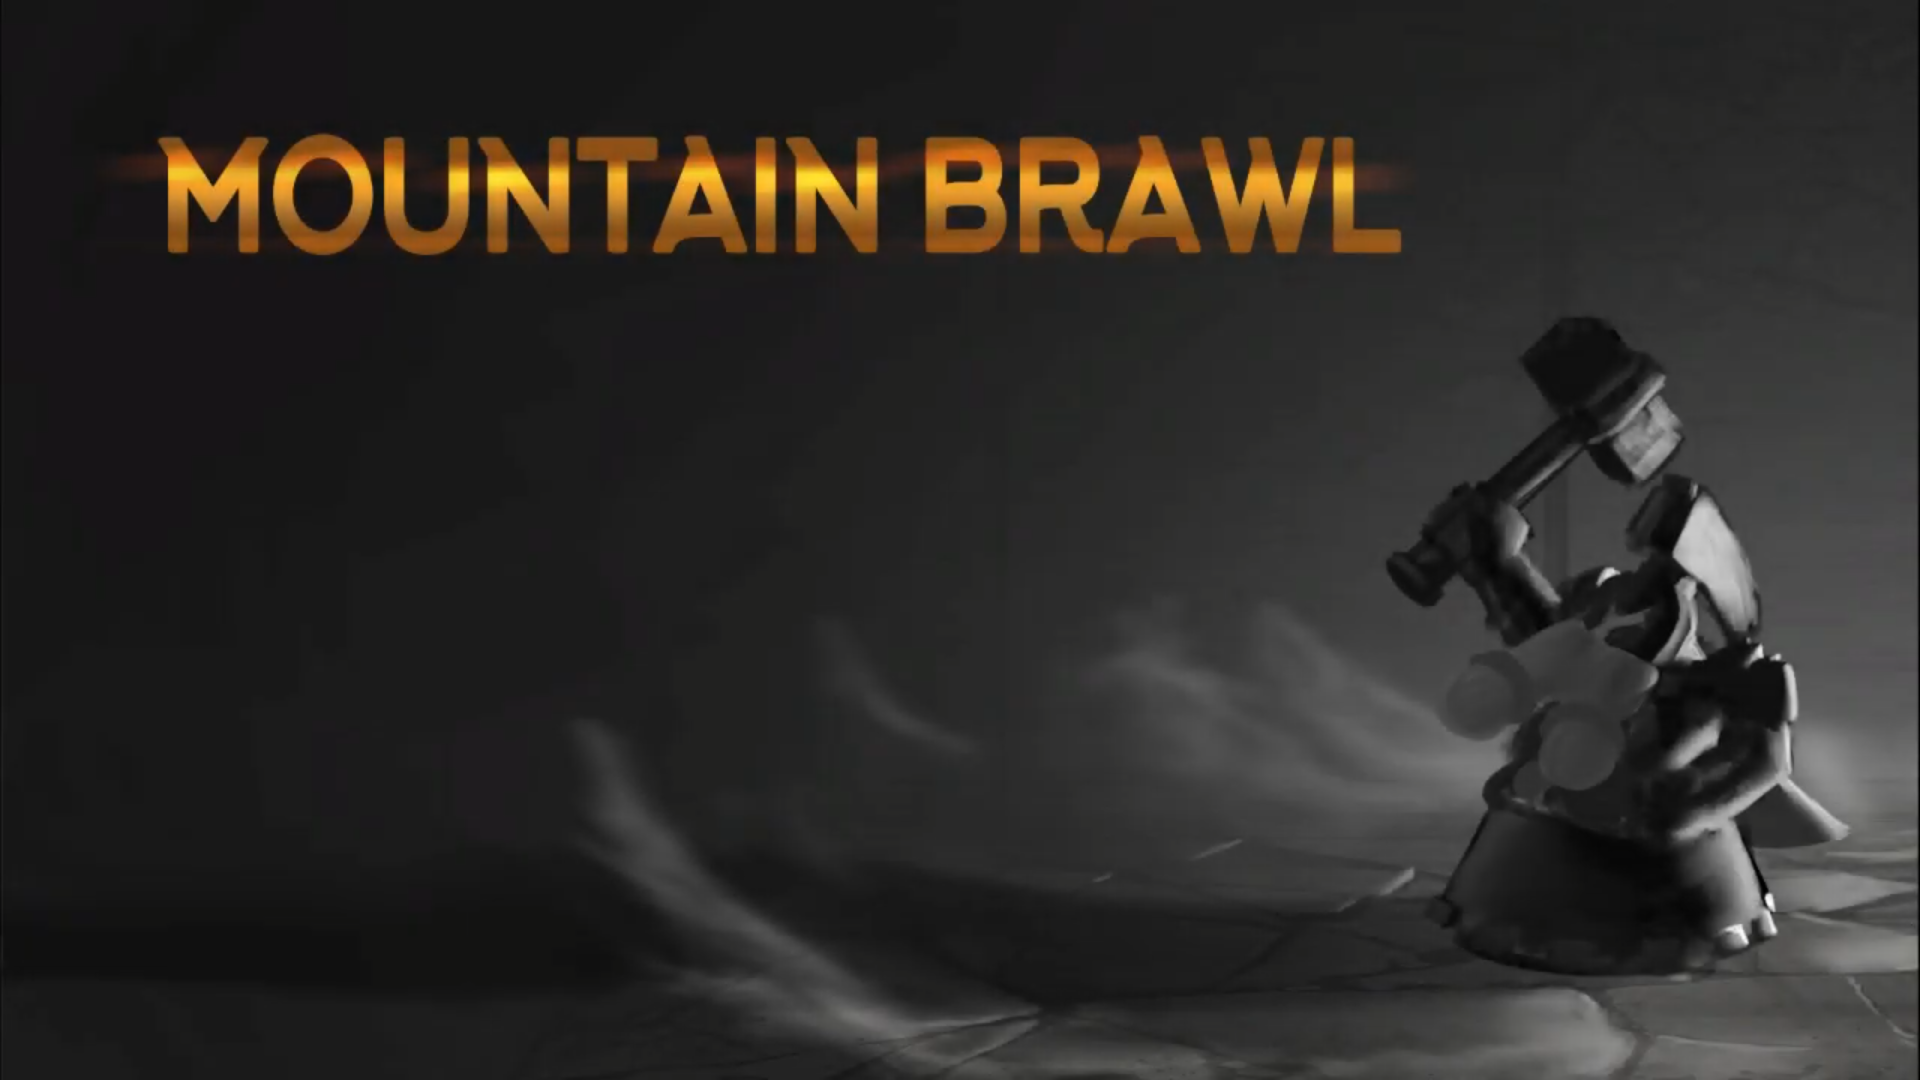 Mountain Brawl